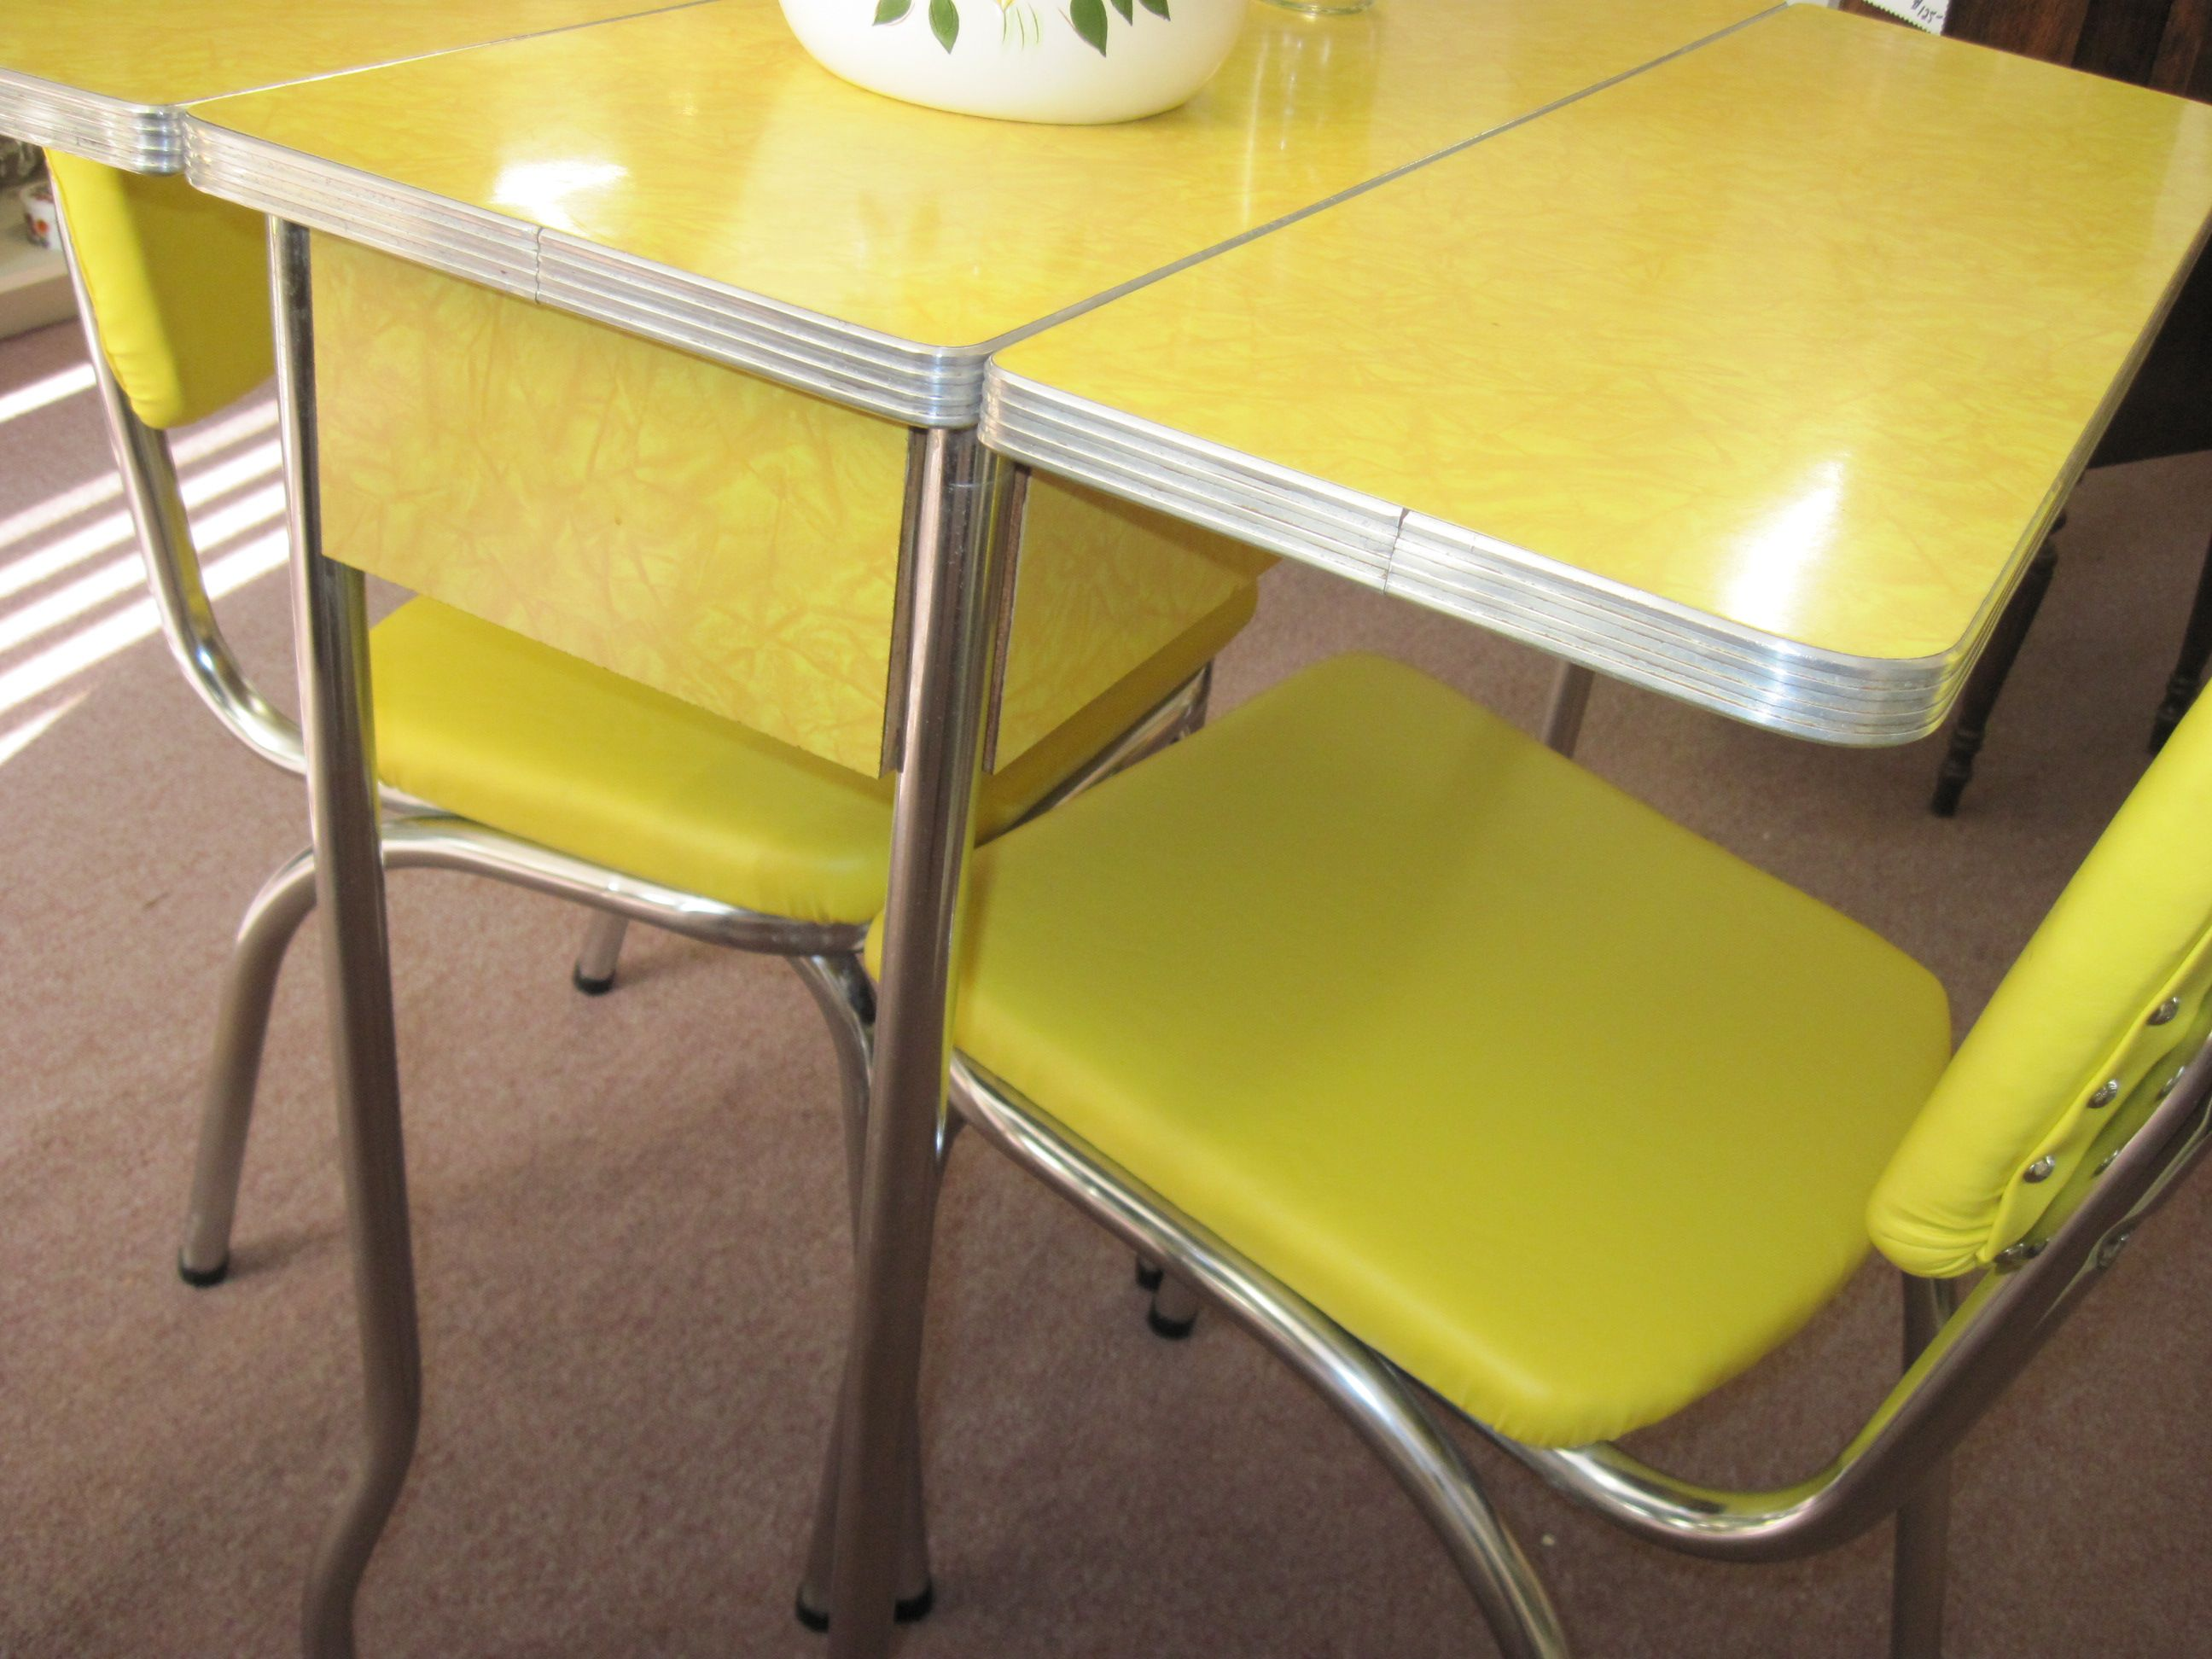 kitchen tables and more retro drop leaf kitchen tables and chairs Yellow s Cracked Ice Formica Table